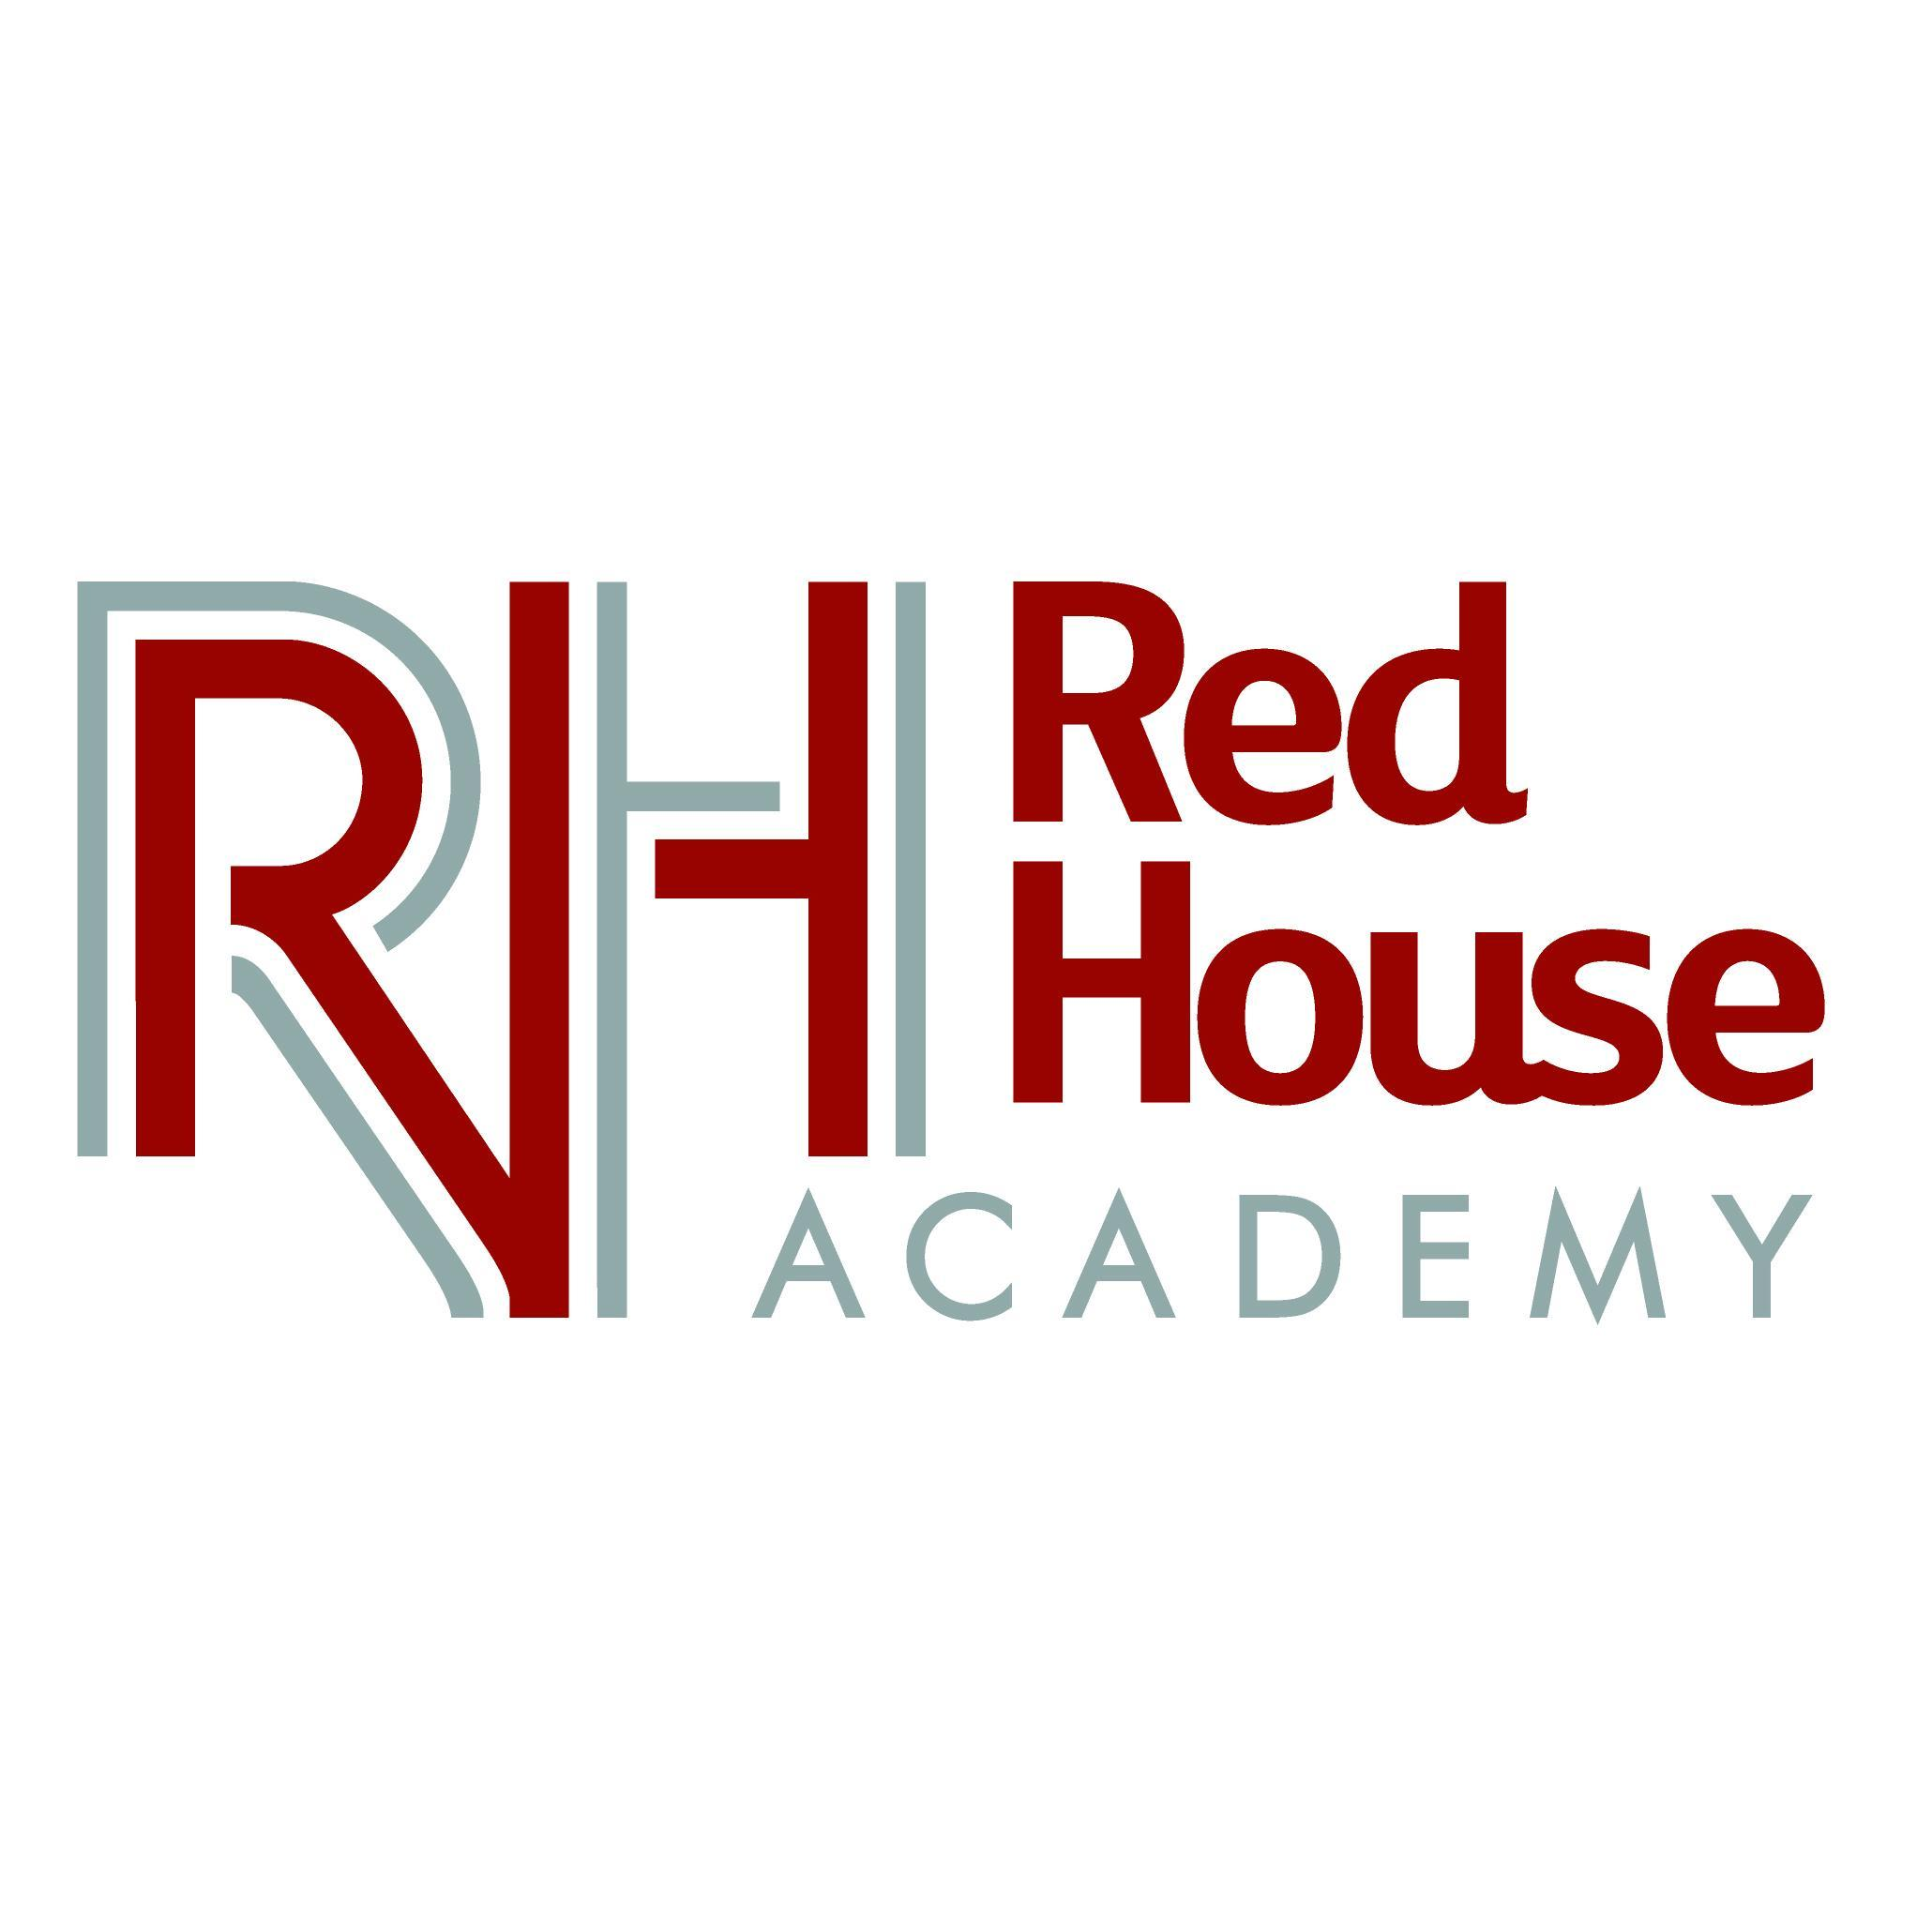 RED HOUSE ACADEMY